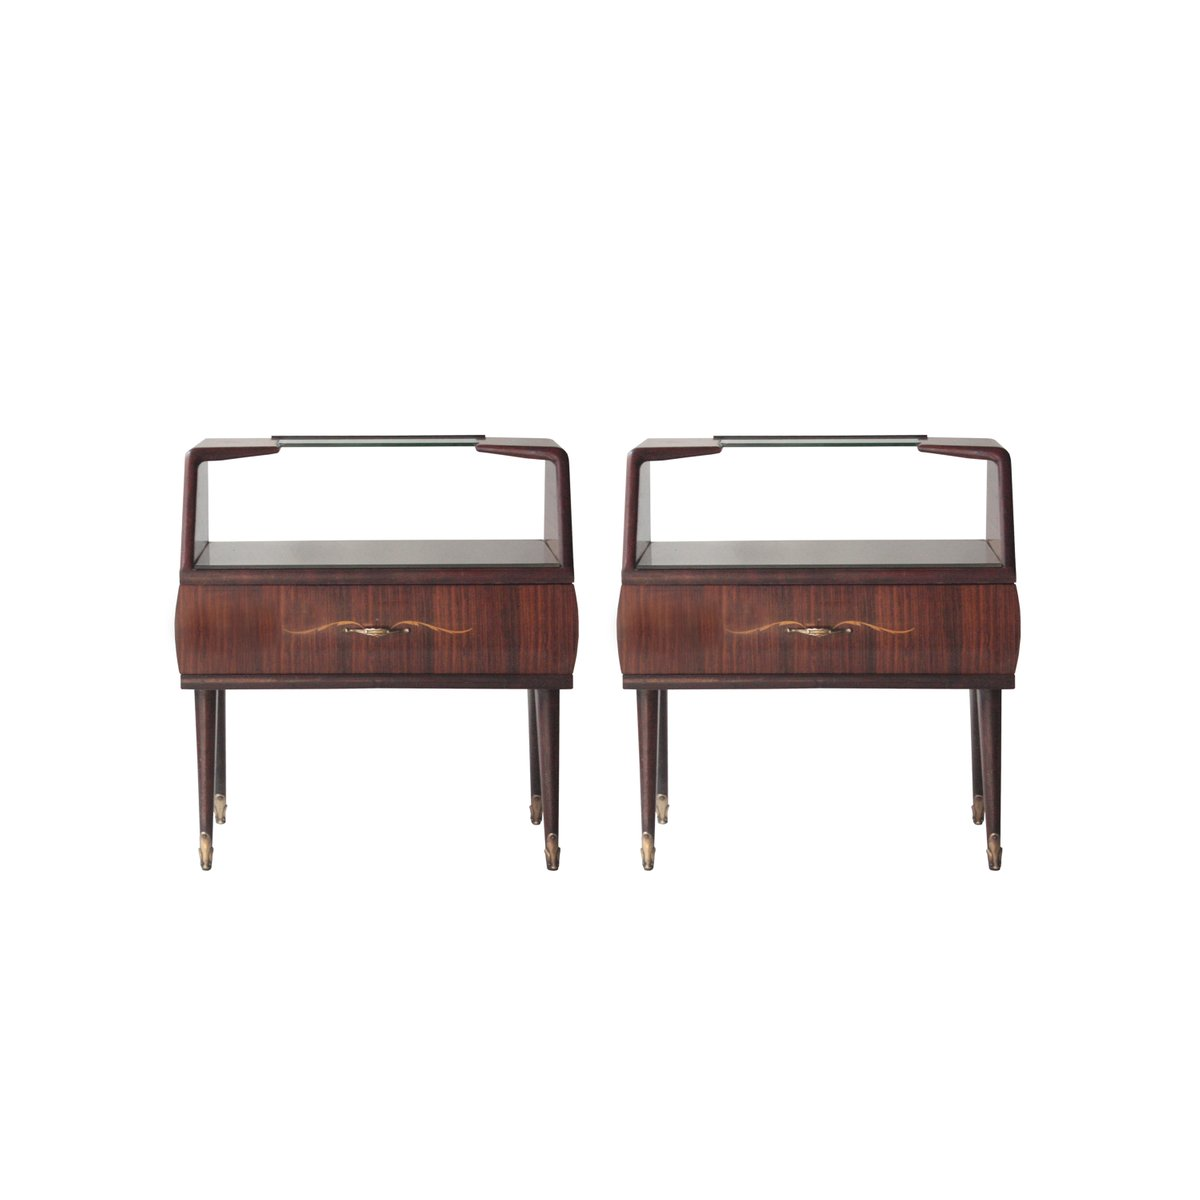 tables de chevet en palissandre et verre opalin 1950s set de 2 en vente sur pamono. Black Bedroom Furniture Sets. Home Design Ideas